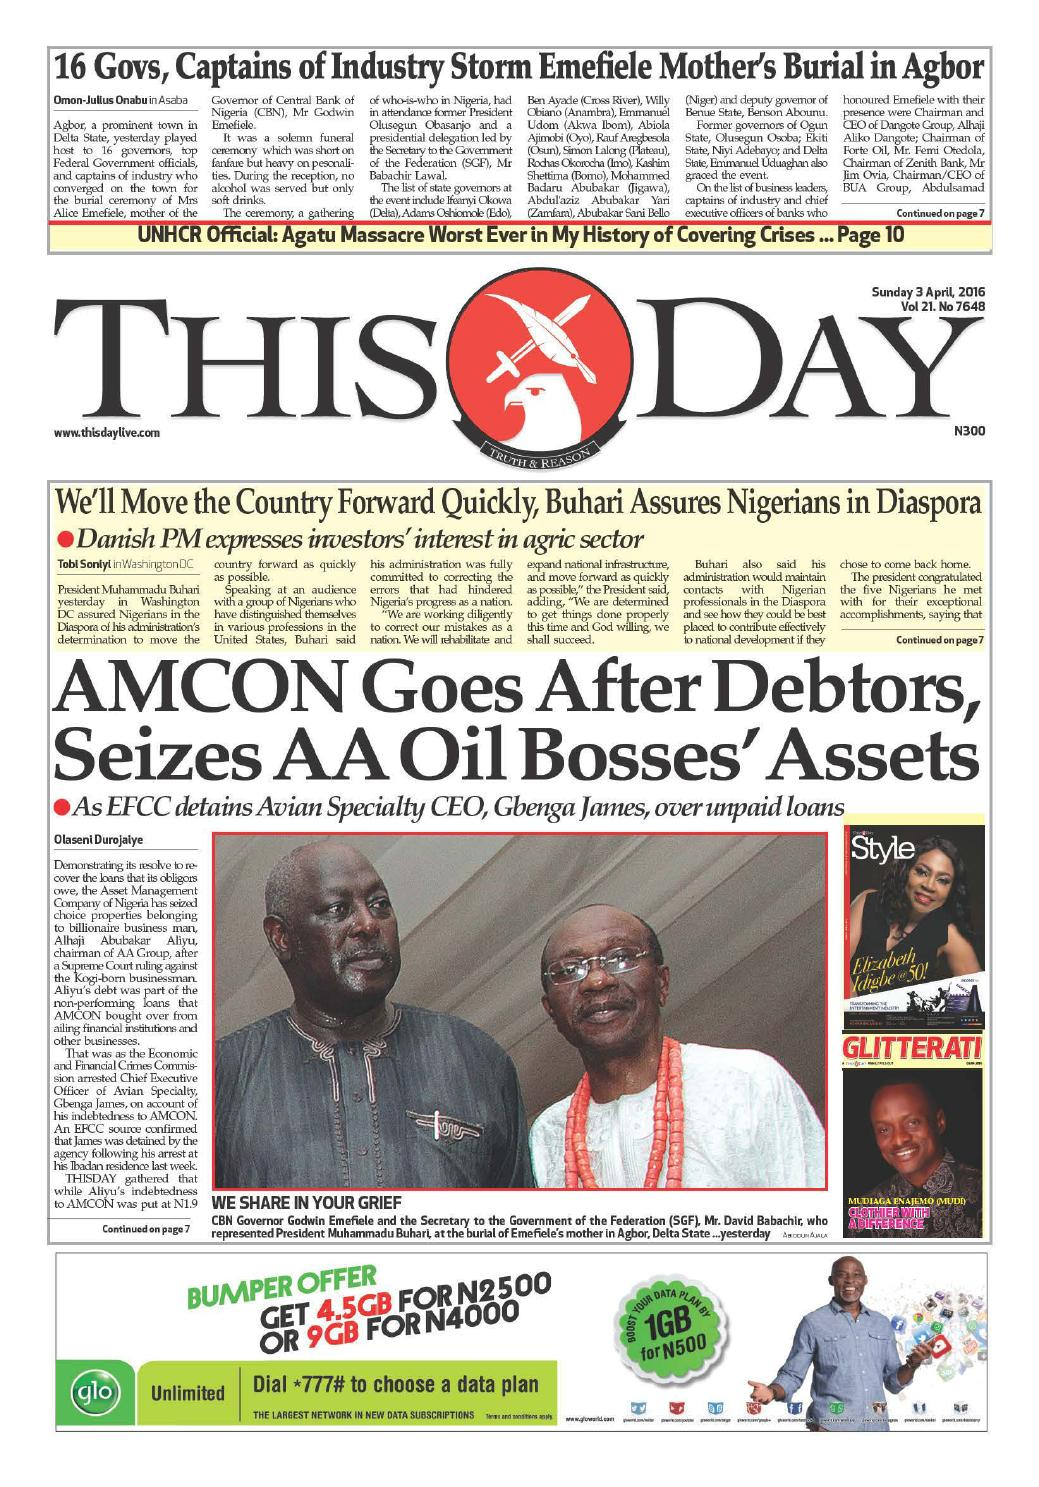 297f4a3b674 Sunday 3rd April 2016 by THISDAY Newspapers Ltd - issuu